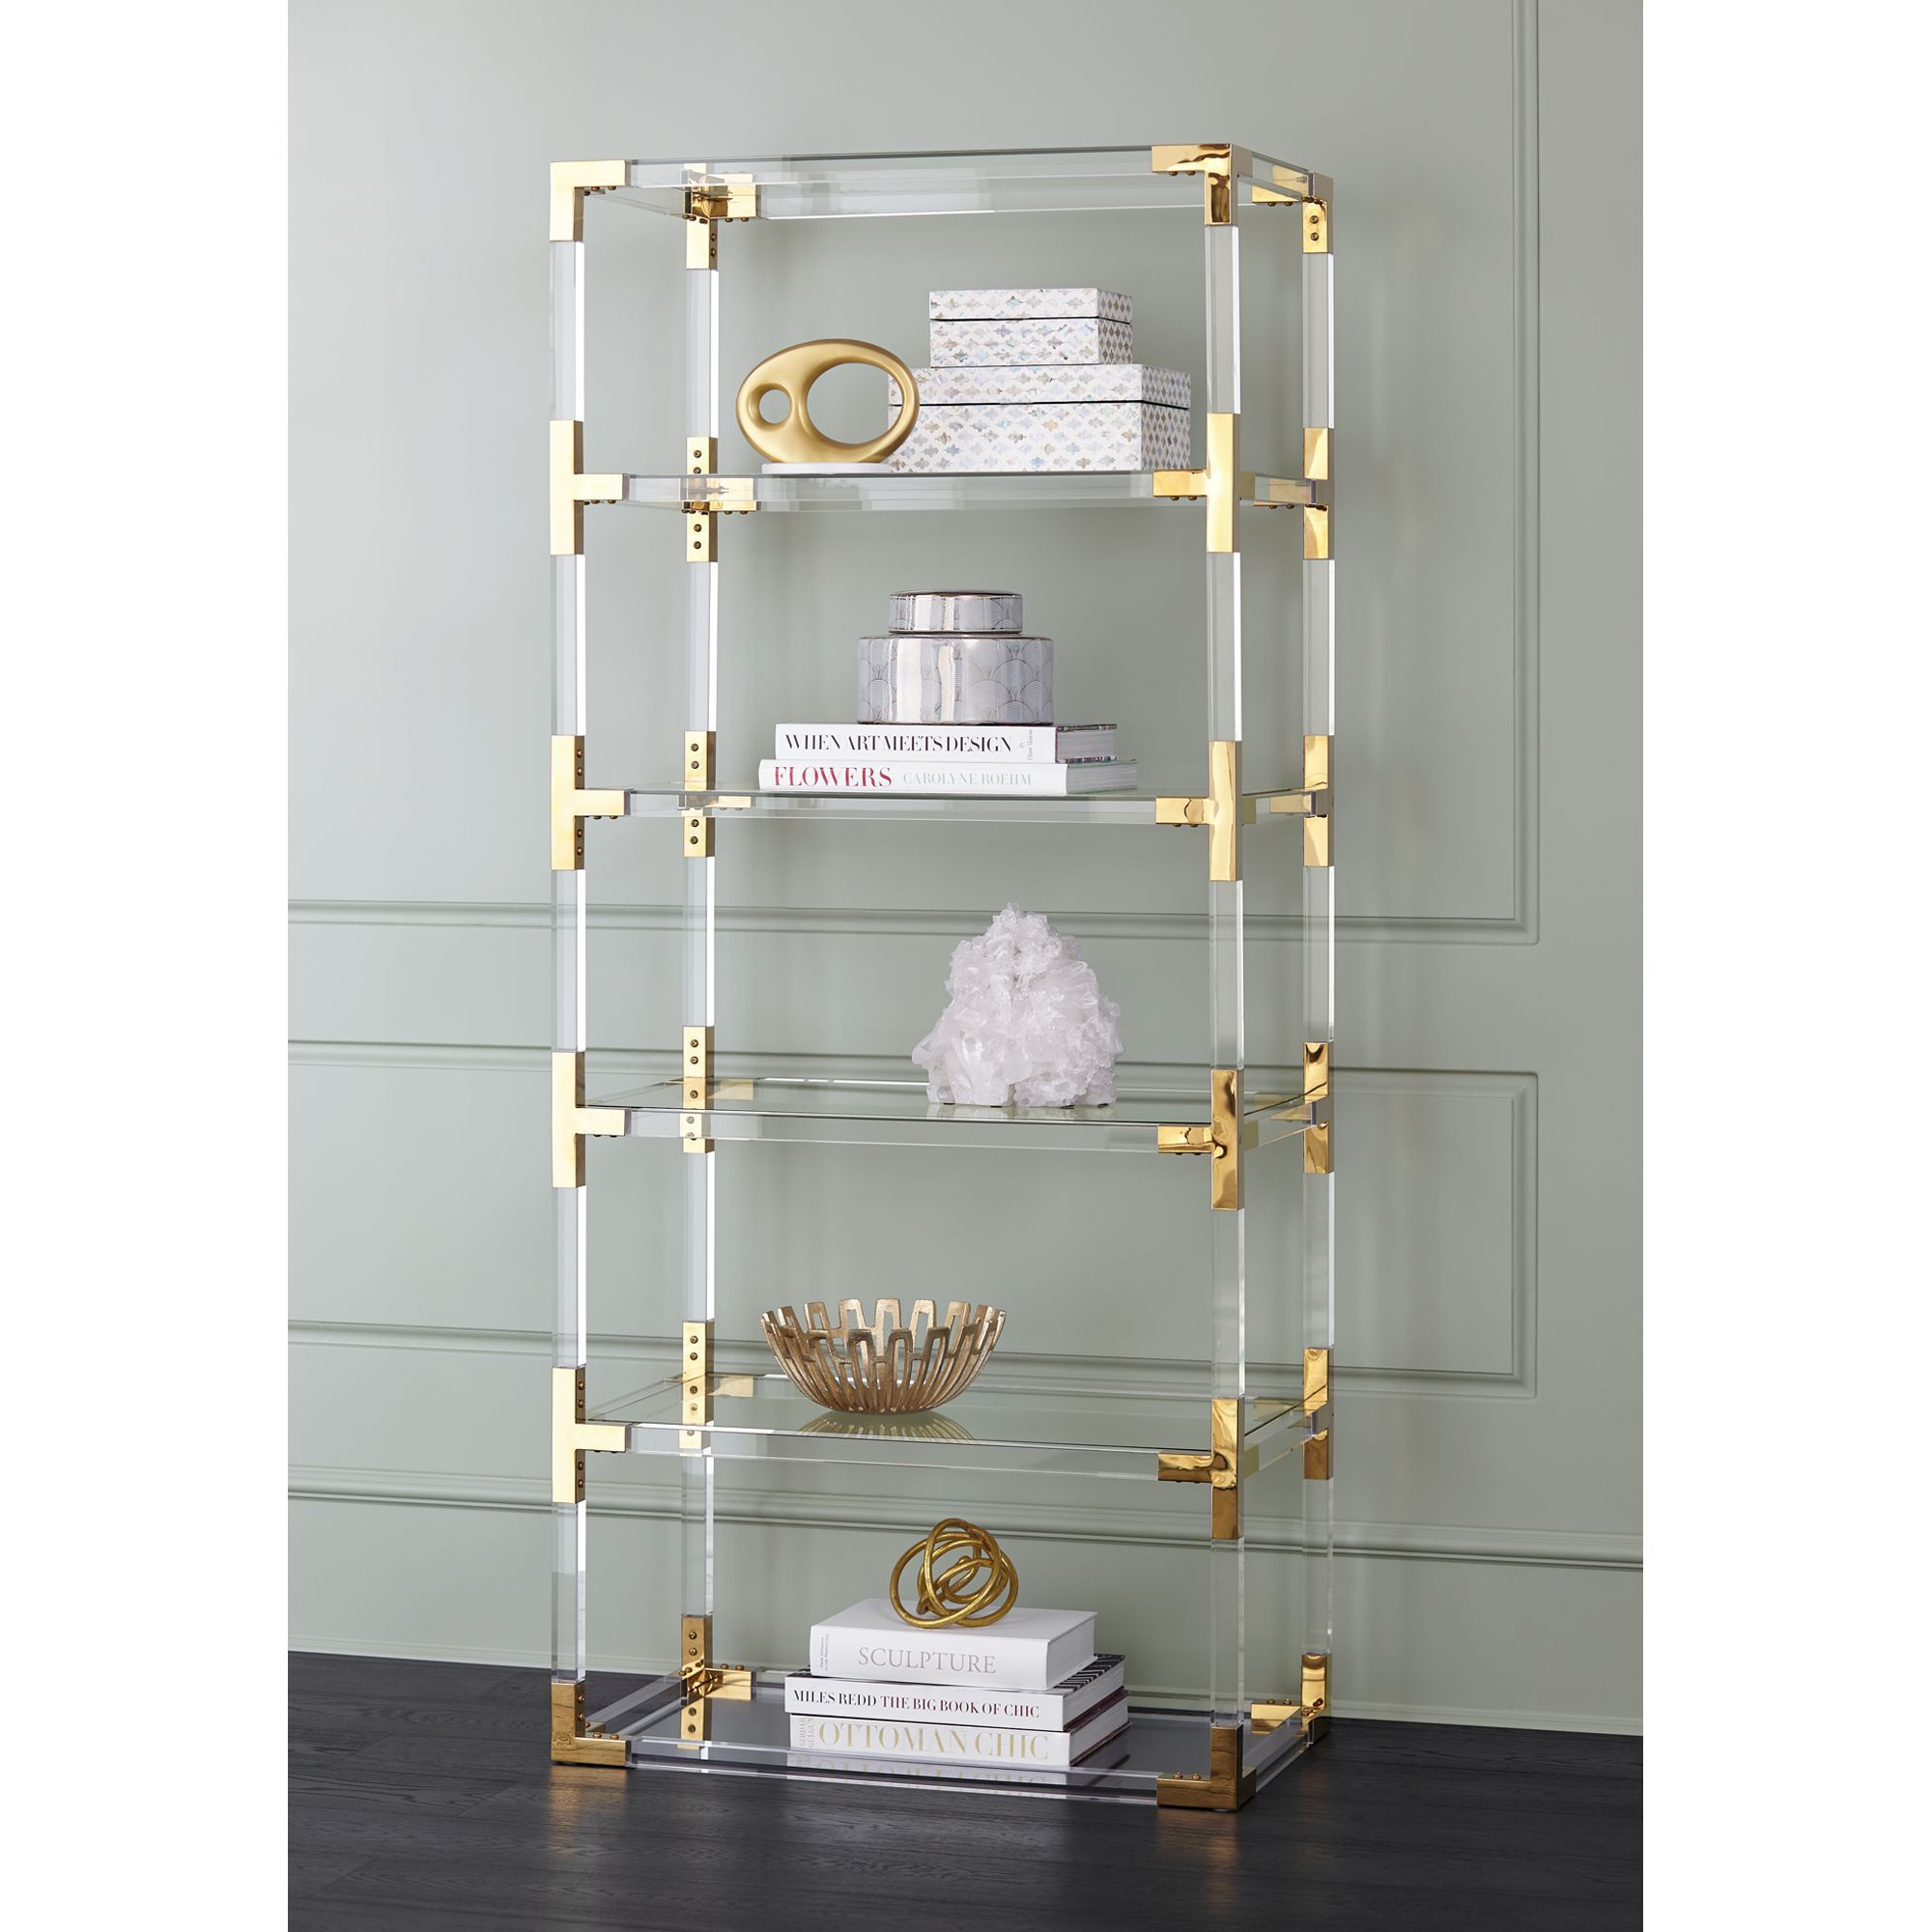 55 Downing Street Hanna 70 3 4 Clear Acrylic And Gold 6 Shelf Open Bookcase Walmart Com Open Bookcase Gold Shelves Shelves